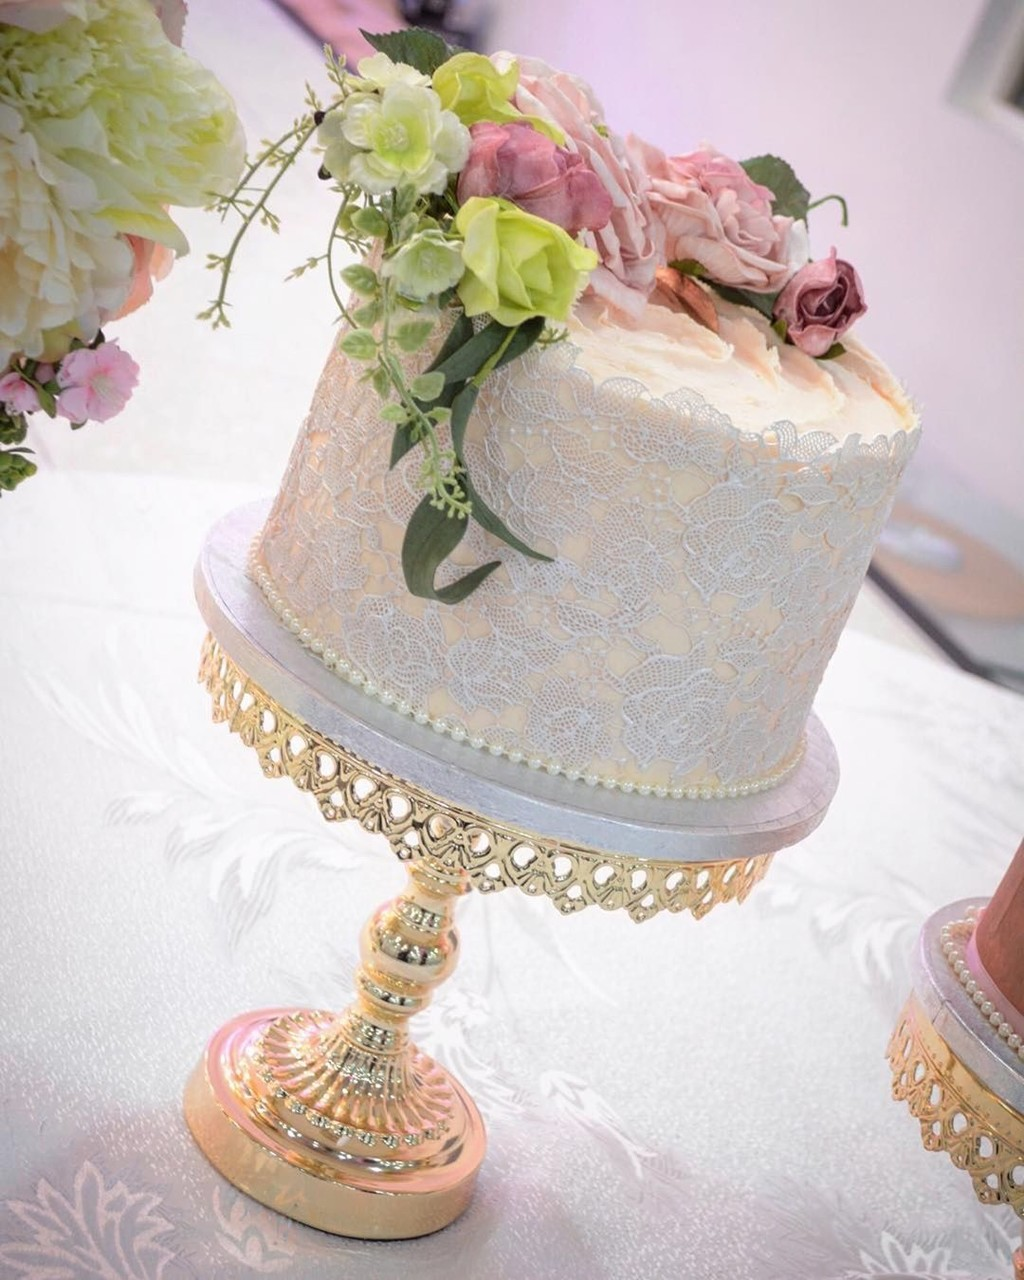 ♡ Wedding Elegance ♡ with edible lace for a vintage look